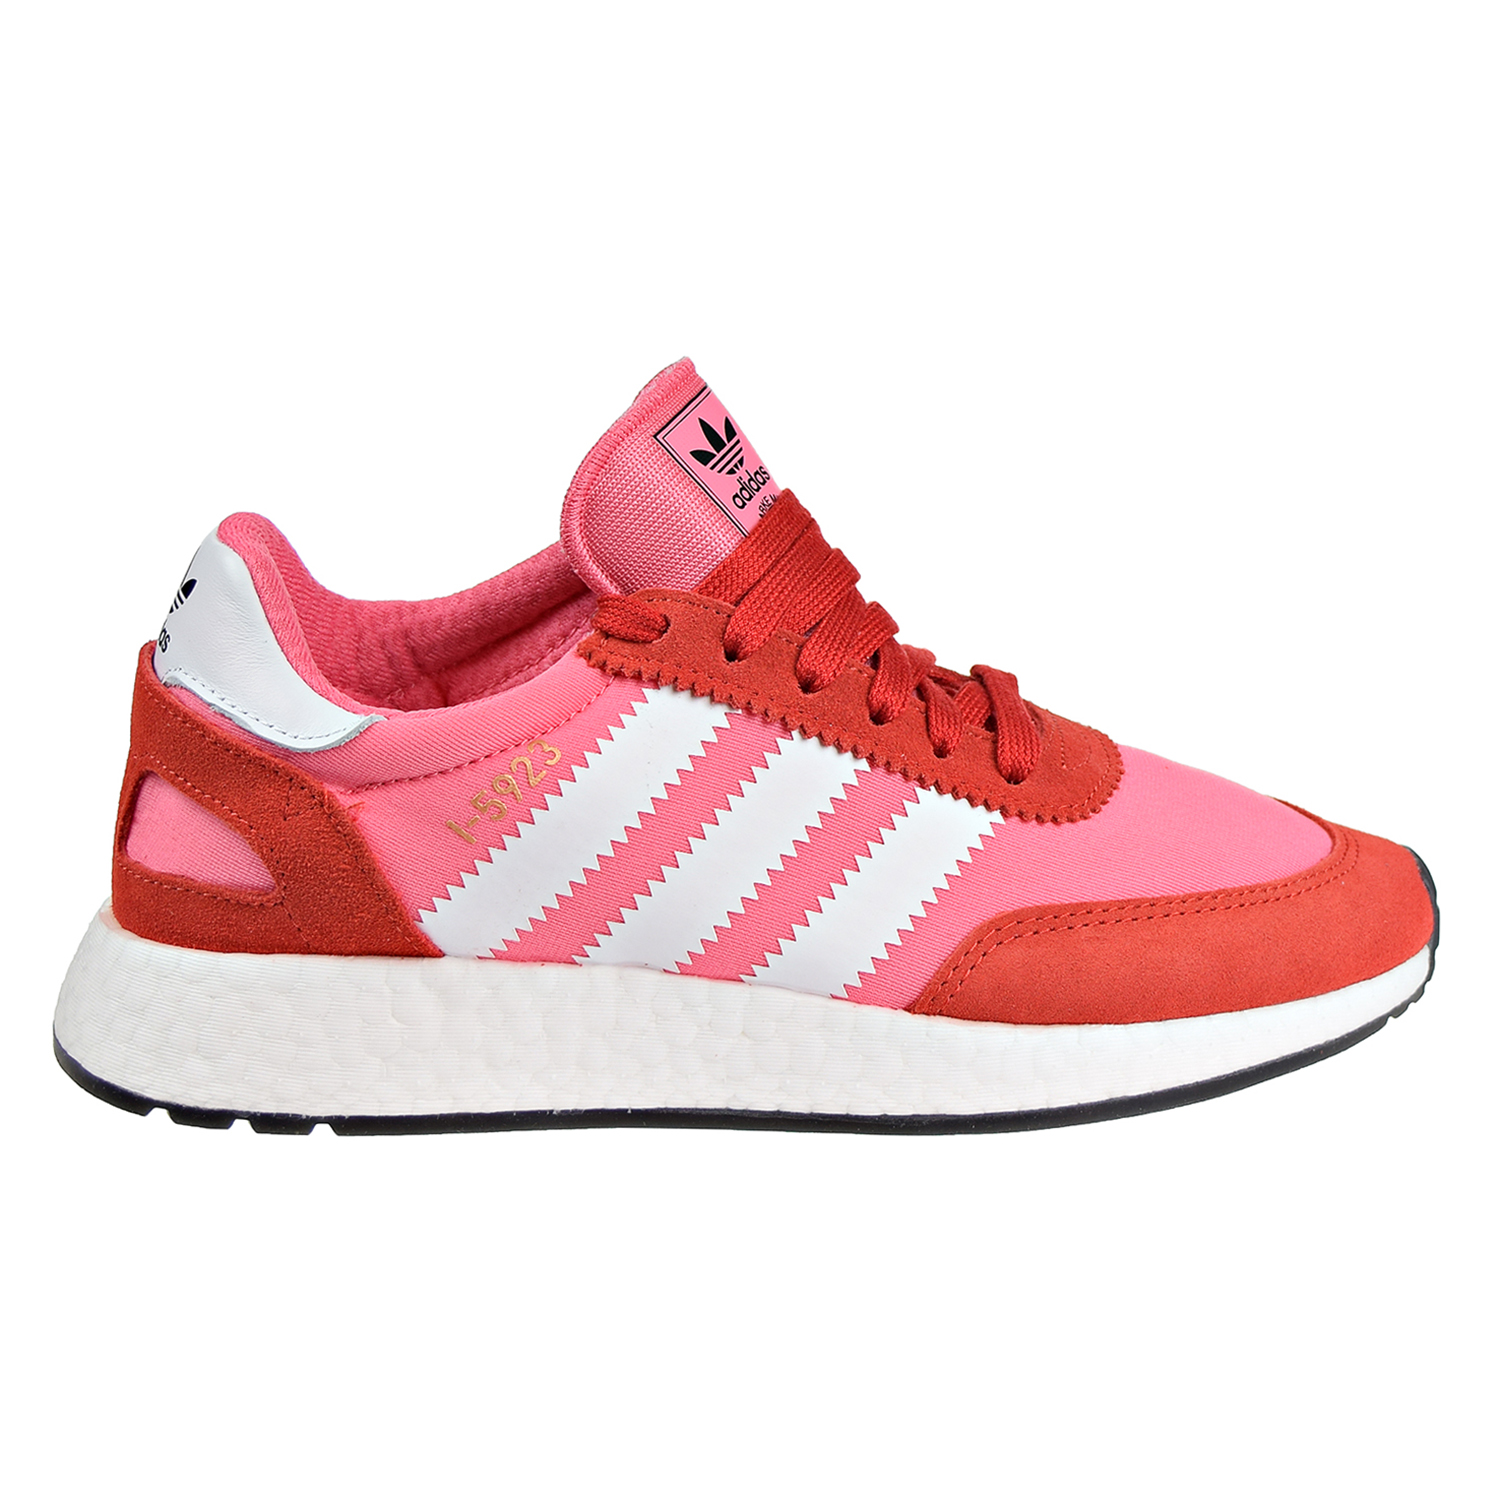 Details about Adidas I 5923 Women's Running Shoes Chalk Pink Footwear White Red cq2527